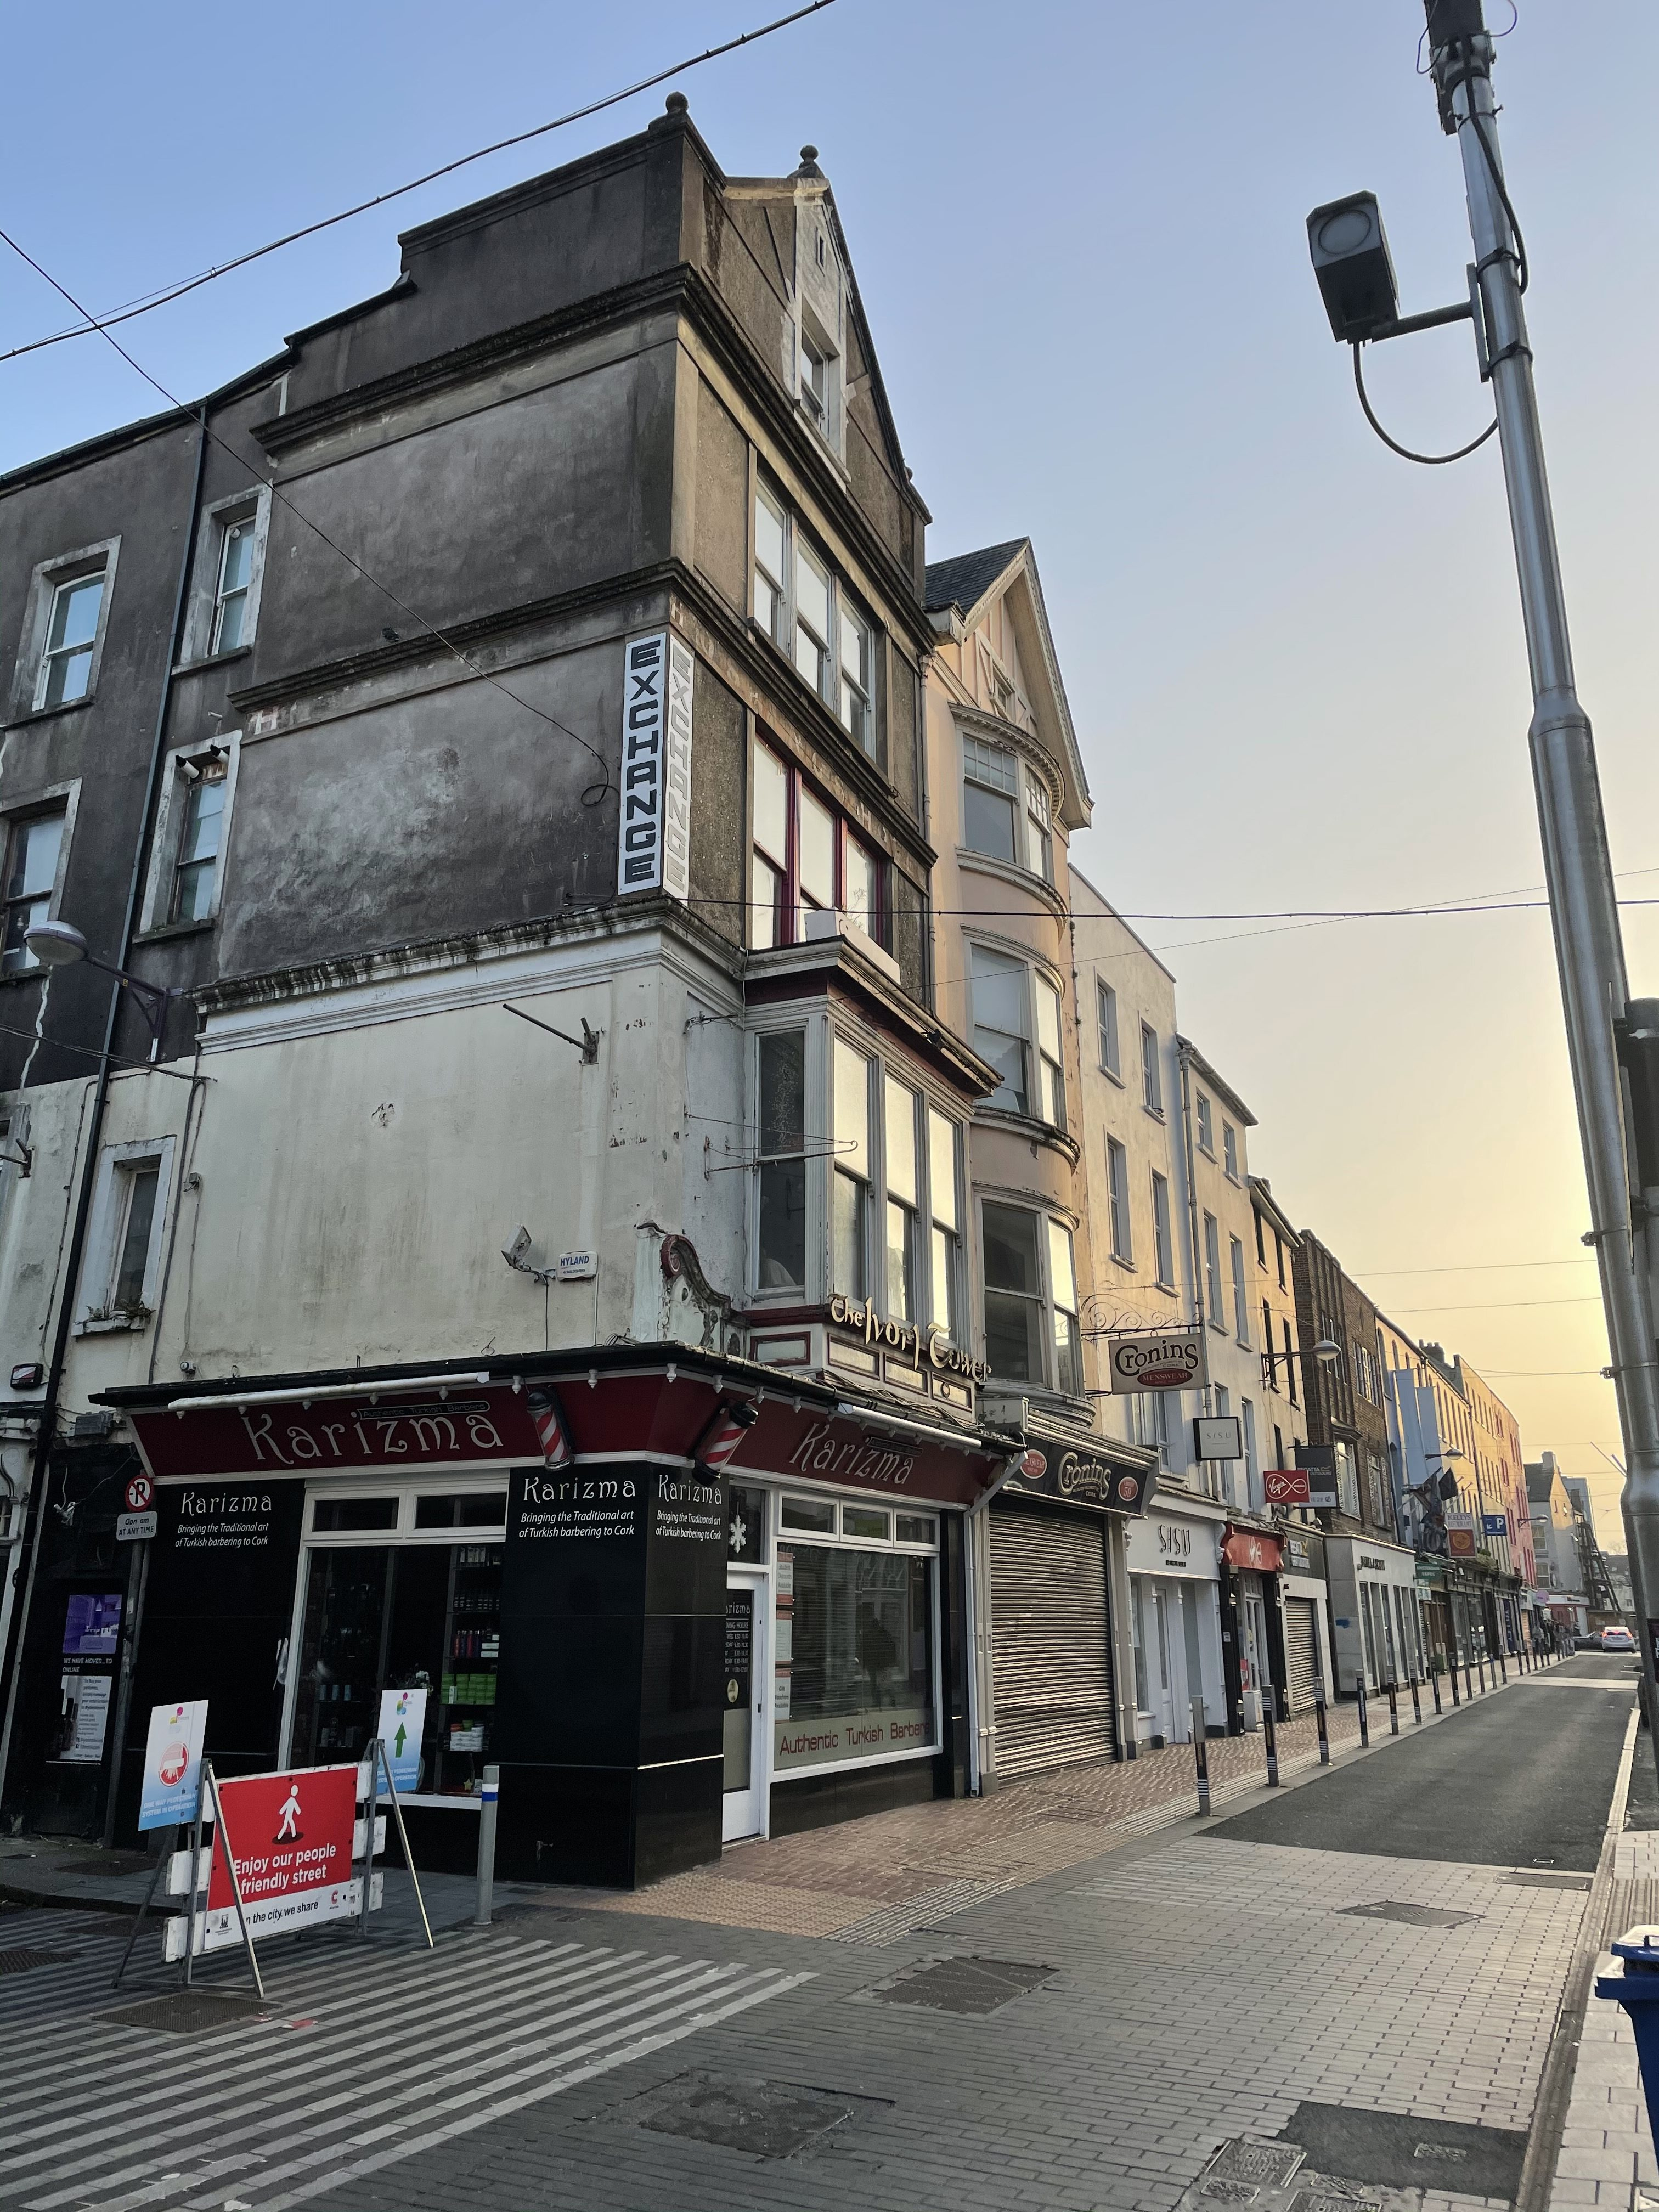 End-of-terrace single-bay four-storey gable-fronted premises, c. 1880,  Oliver Plunkett Street, Cork, present day (picture: Kieran McCarthy)